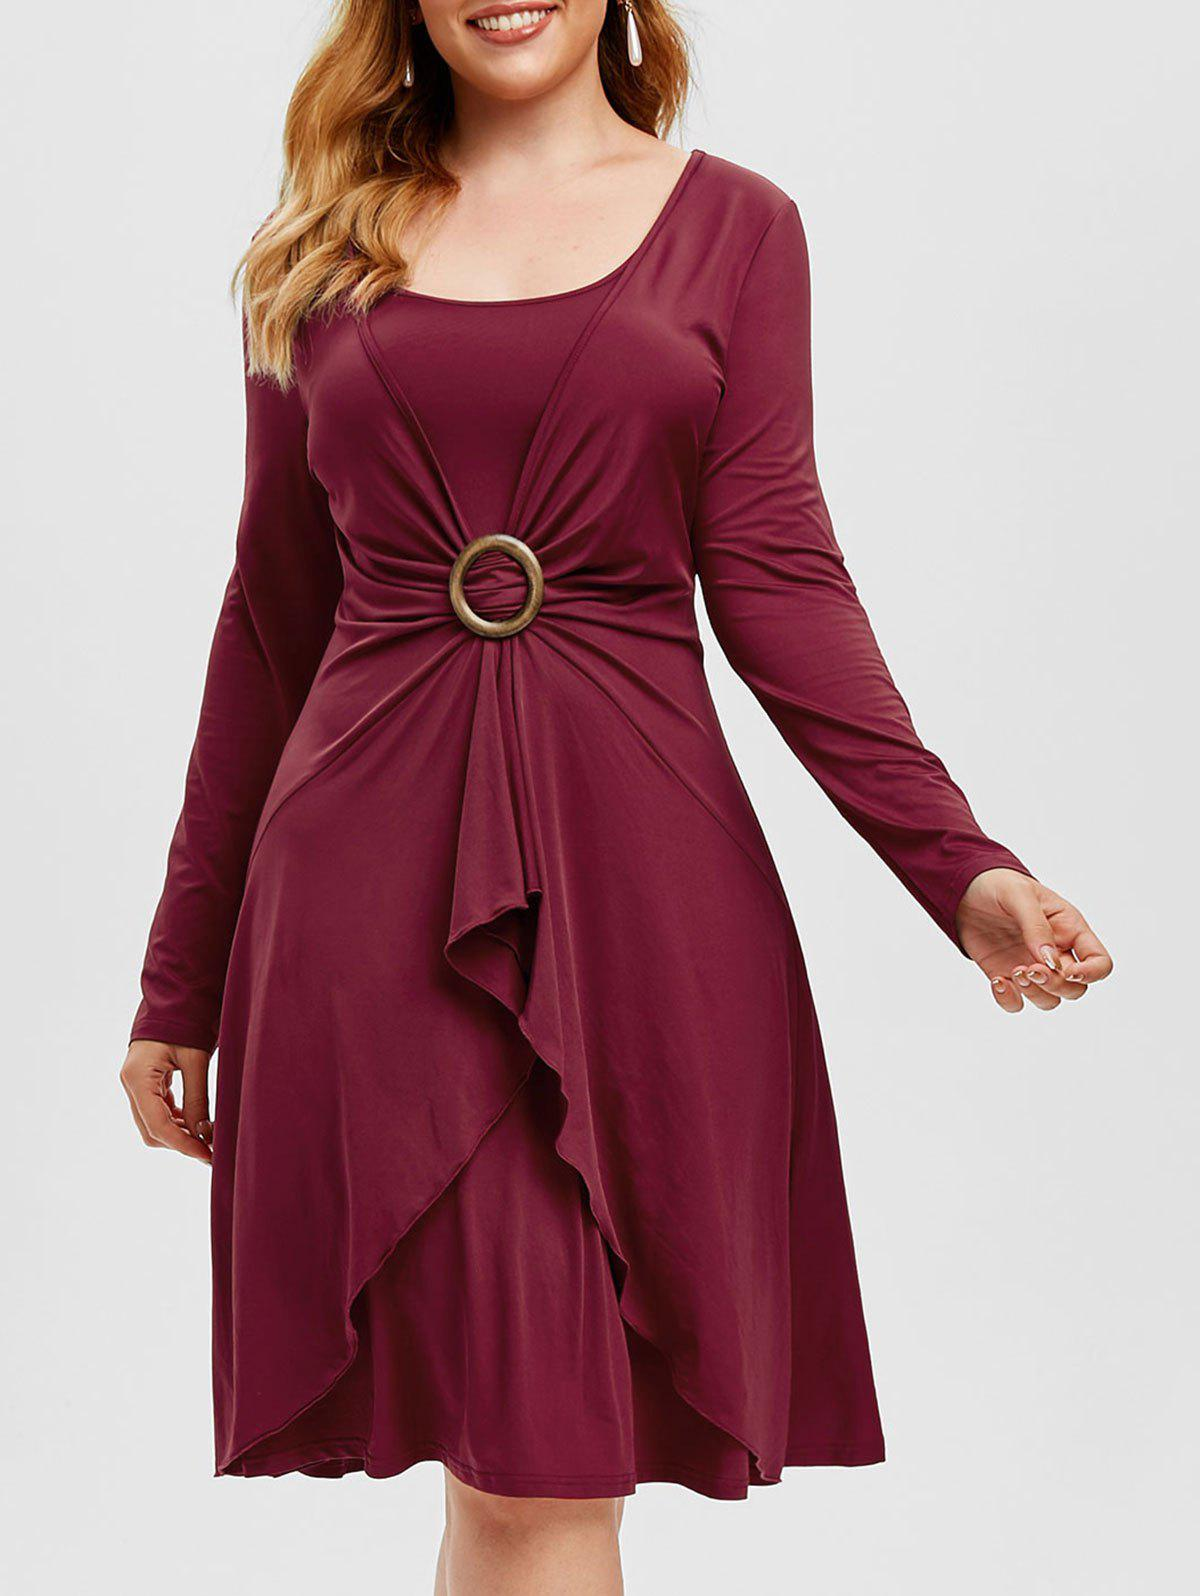 Plus Size O Ring Overlap Dress - RED WINE 4X